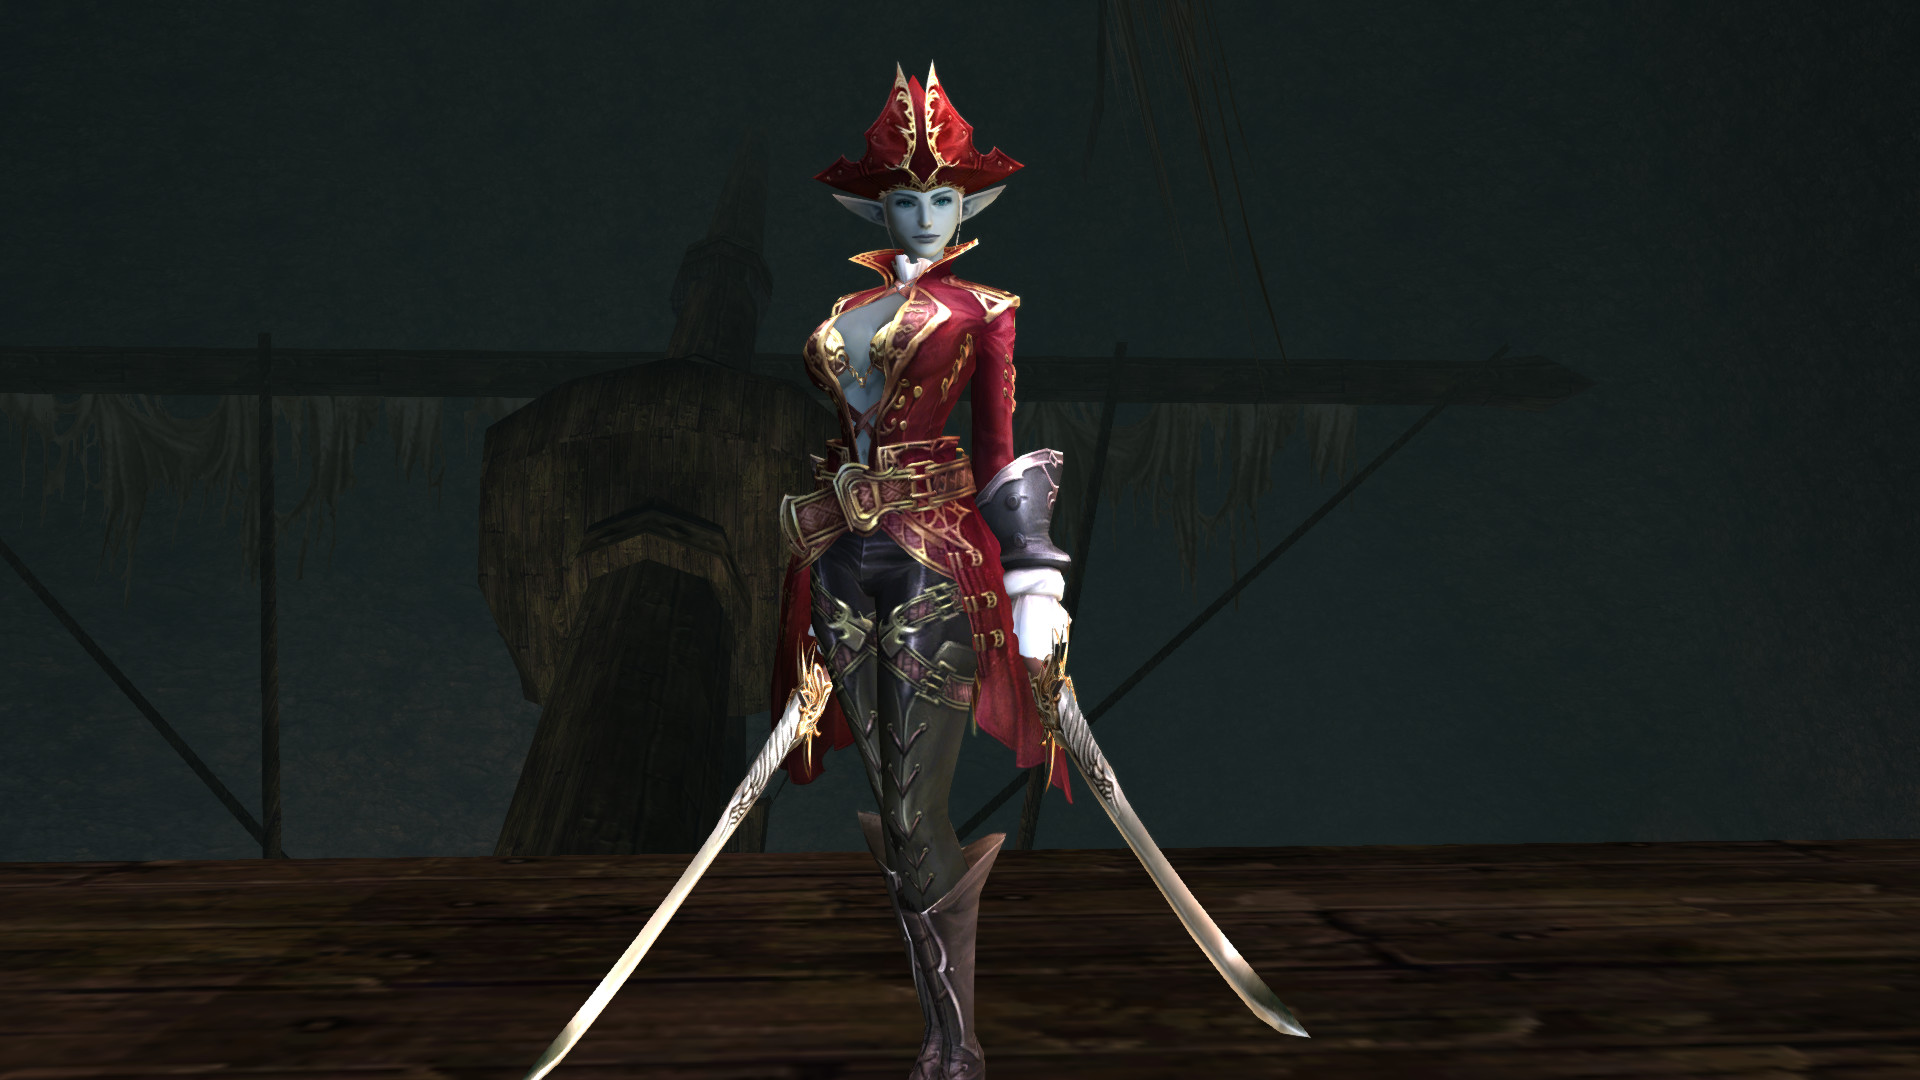 Pirate Costume Screenshots - Lineage II Forums